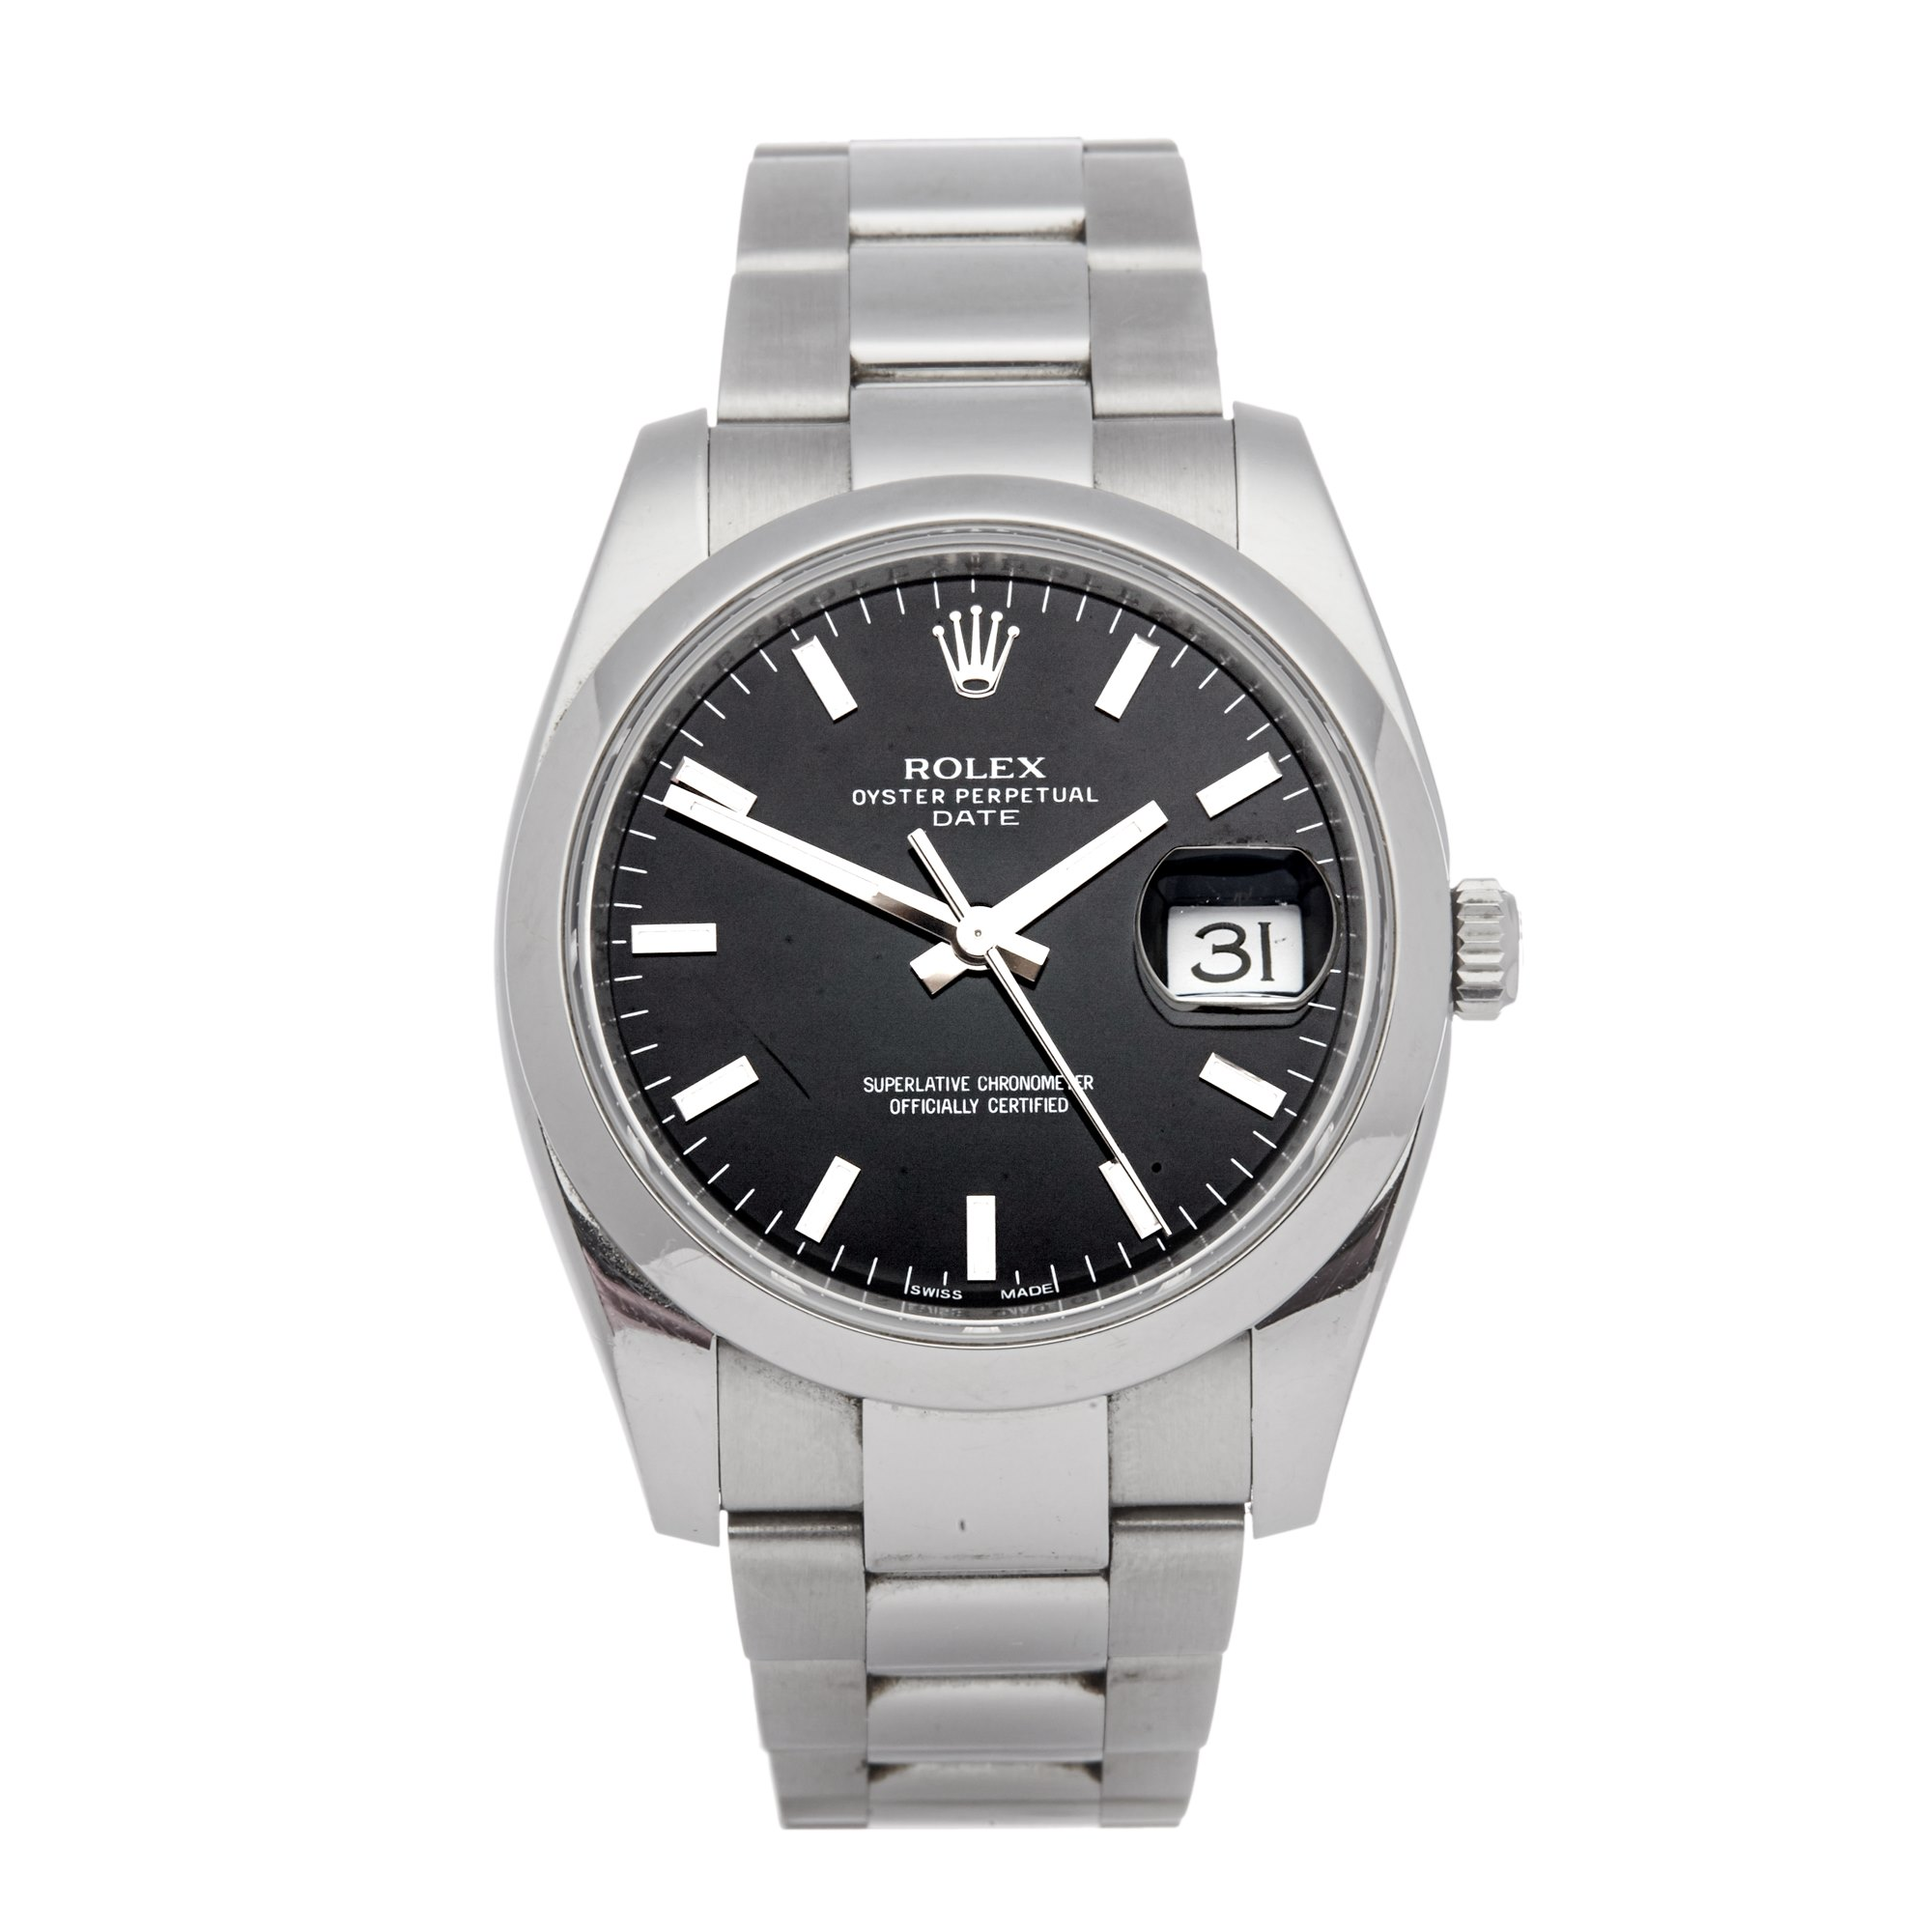 Rolex Oyster Perpetual Date Stainless Steel 115200